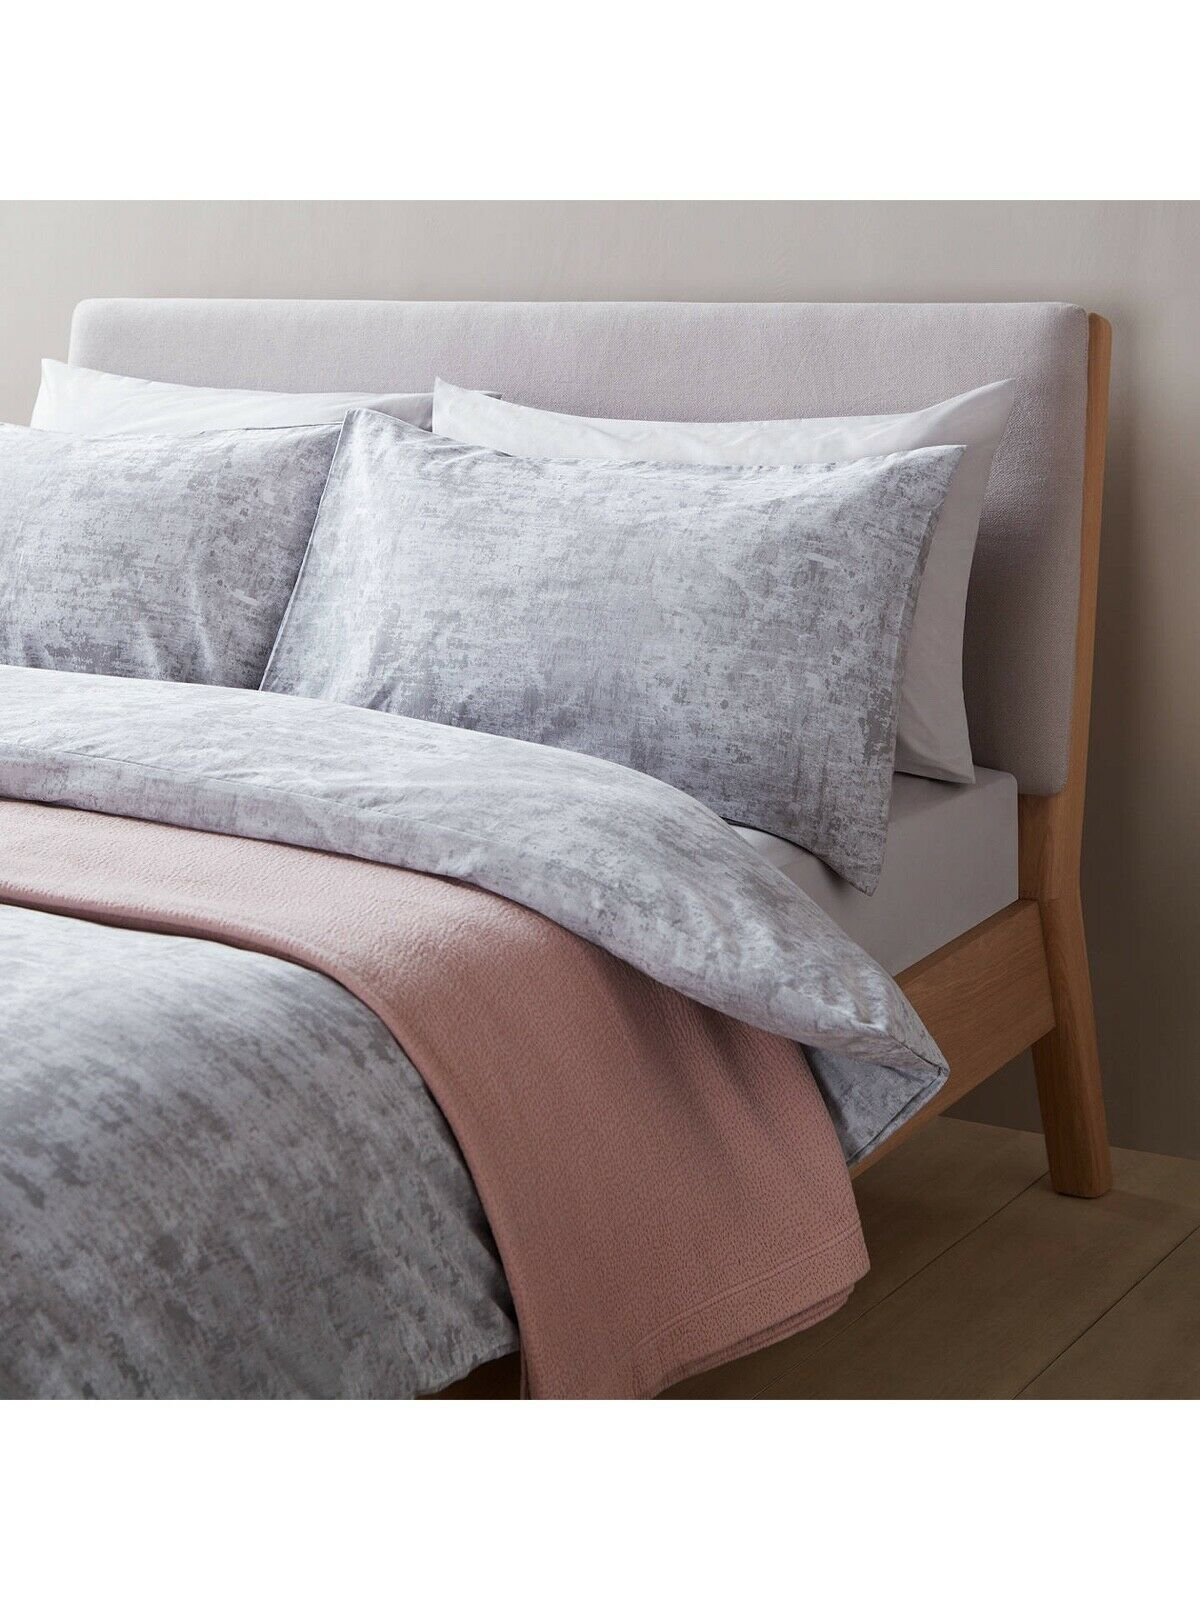 JOHN LEWIS DESIGN PROJECT 162 SUPERKING DUVET COVER WITH TWO PILLOWCASES 300 T C